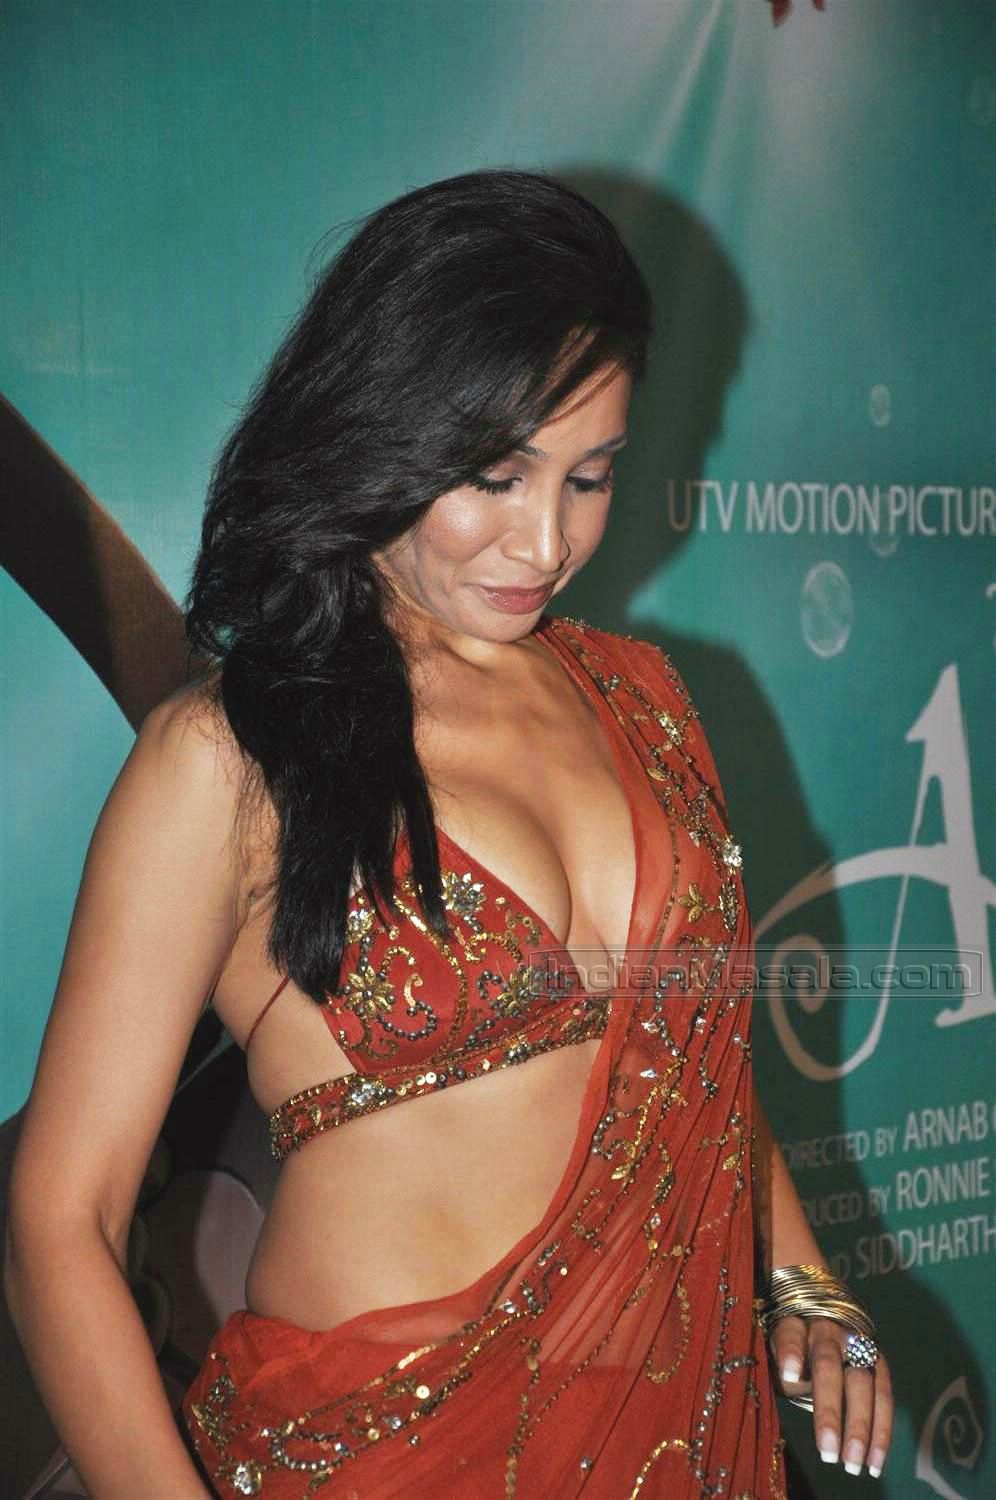 Sofia Hayat In Saree Hot Deepest Cleavage Slip At Arjun Premiere Pics